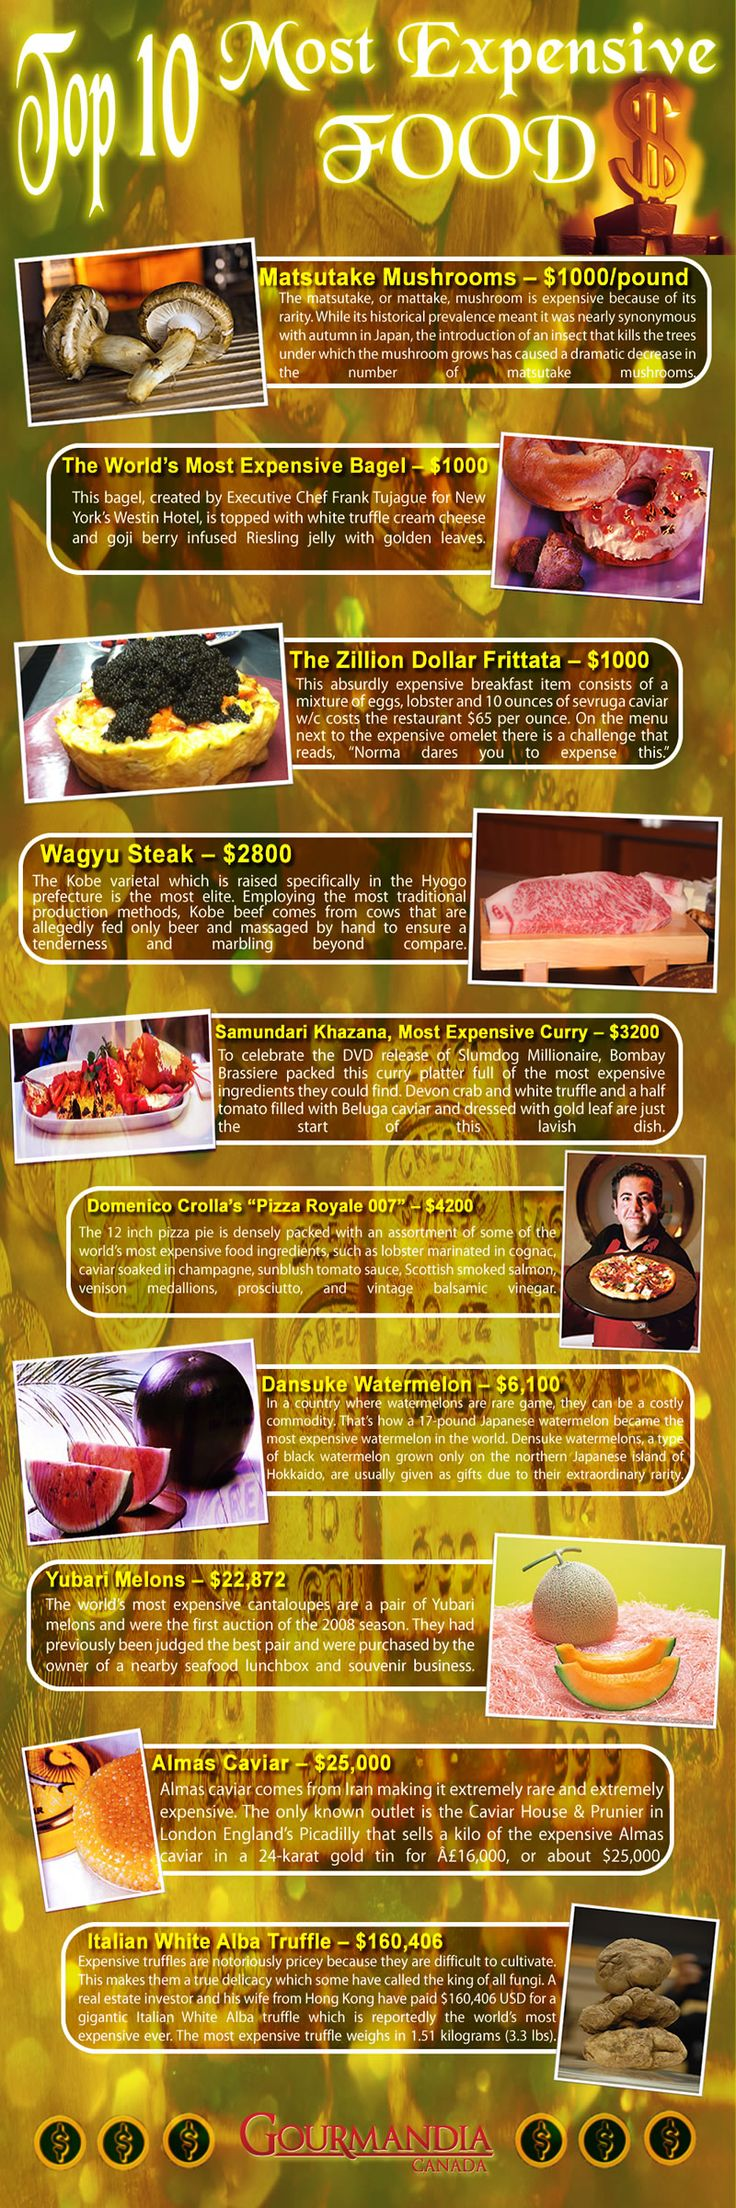 Here the most over the top foods with crazily insane prices that makes them the most expensive foods around the world.